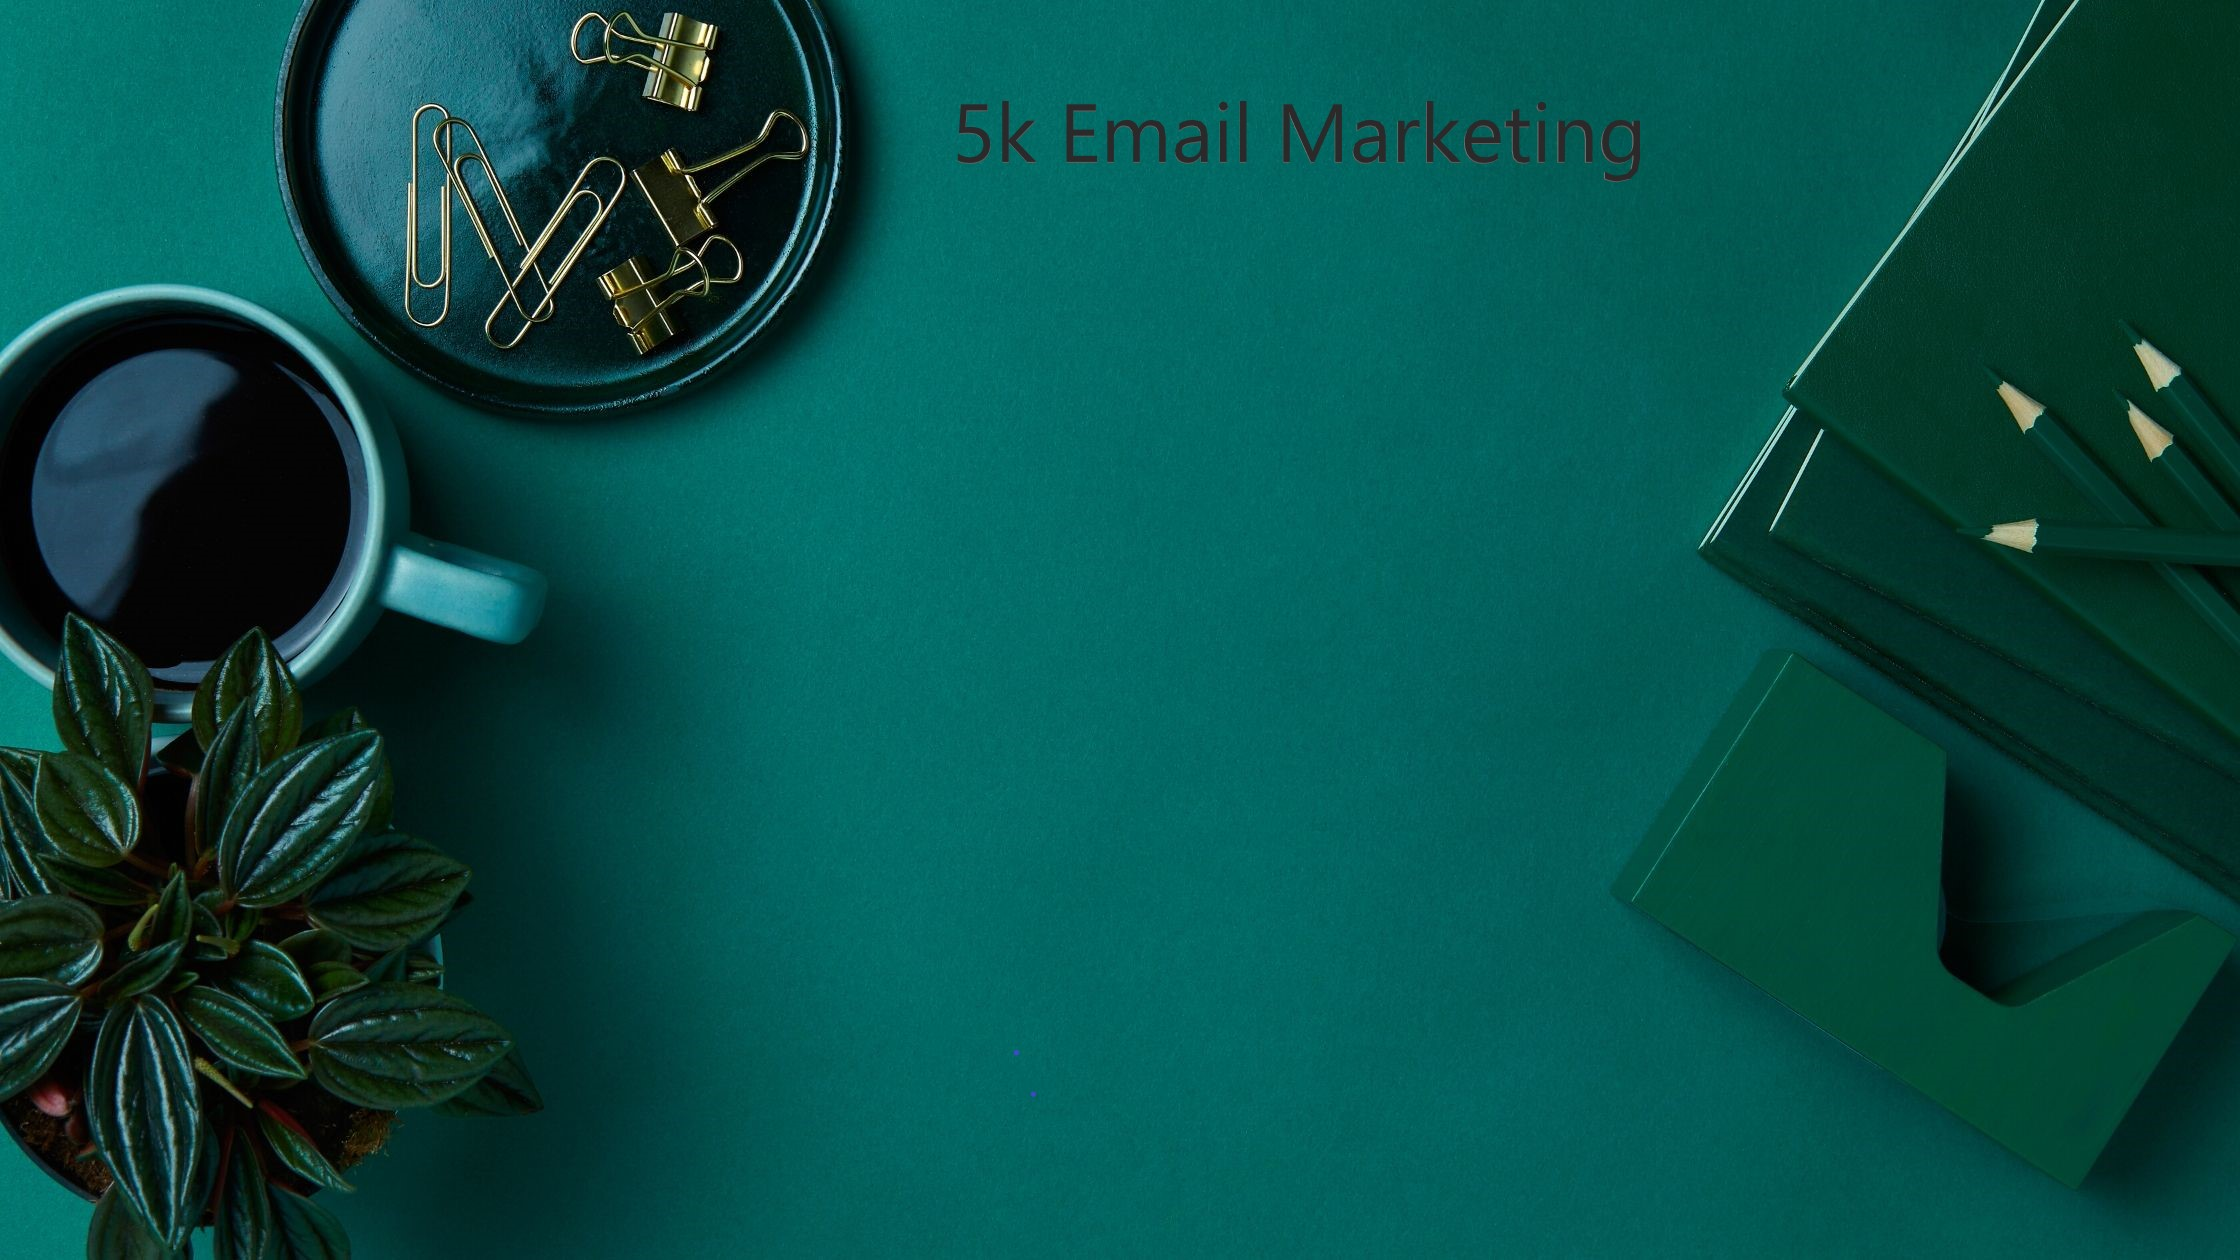 email marketing platforms for Your Business